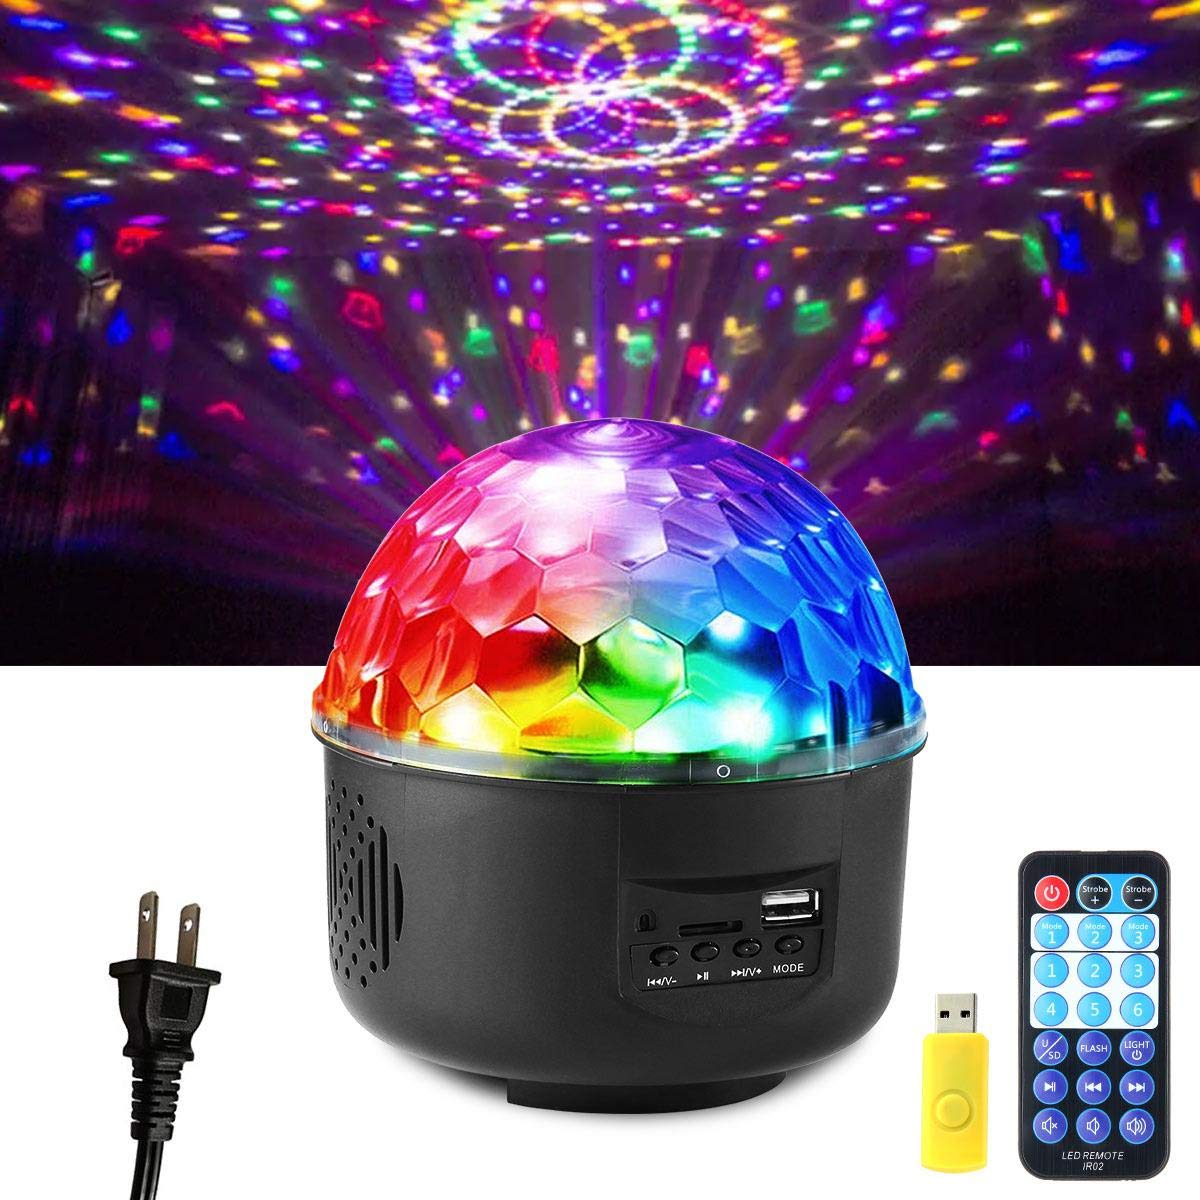 Aolvo Disco Ball Light Projector, DJ Ball Lights Sound Activated Multi Pattern Disco Ball Strobe Light Speaker with Remote Control and USB Flash Drive for Party Bar Karaoke Xmas Wedding Show Club